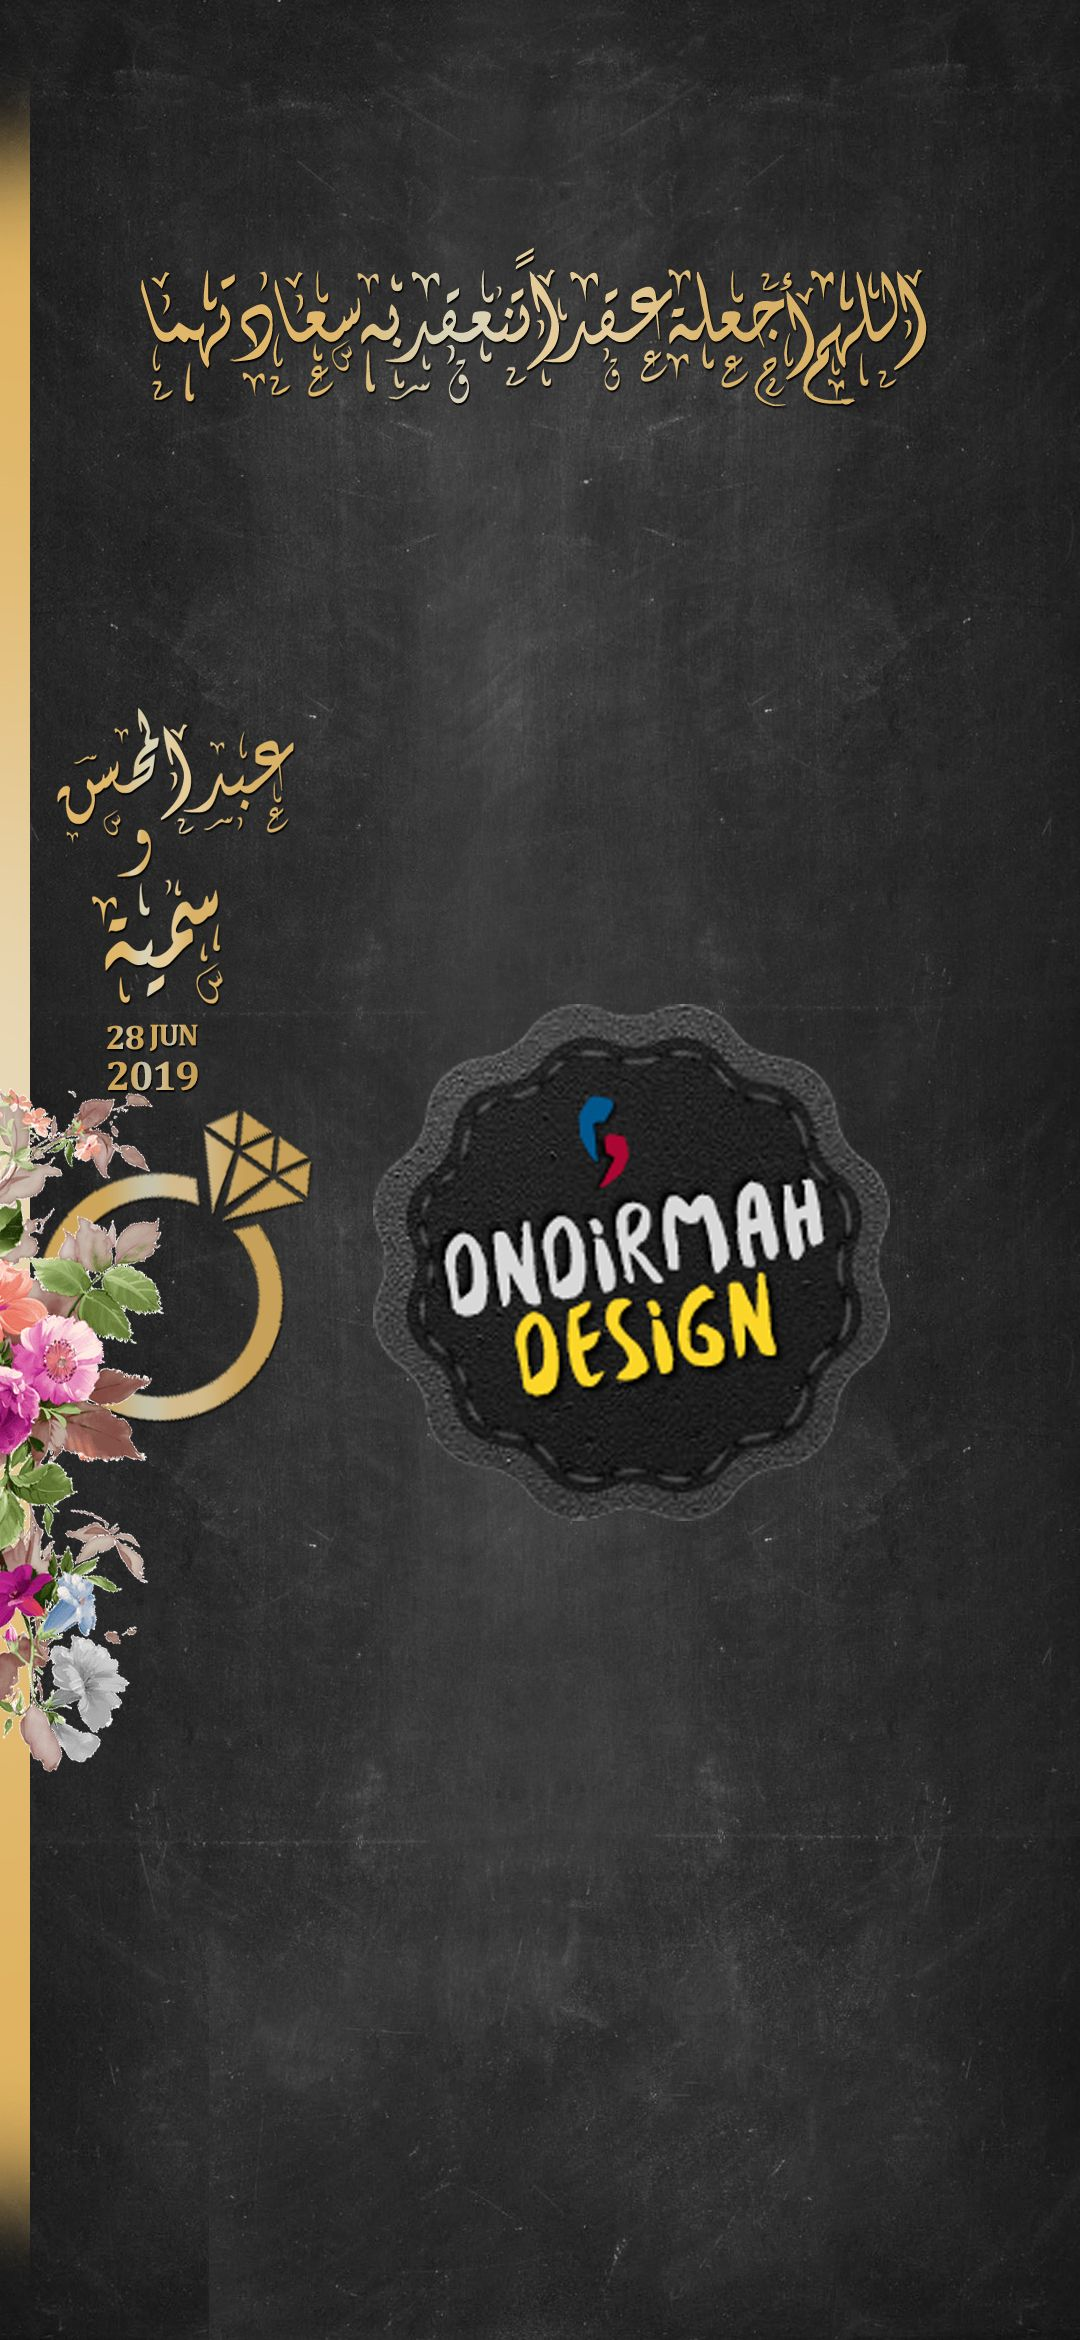 فلتر سناب عقد قران فلتر ملكة Popular Wedding Invitations Popular Wedding Wedding Invitations